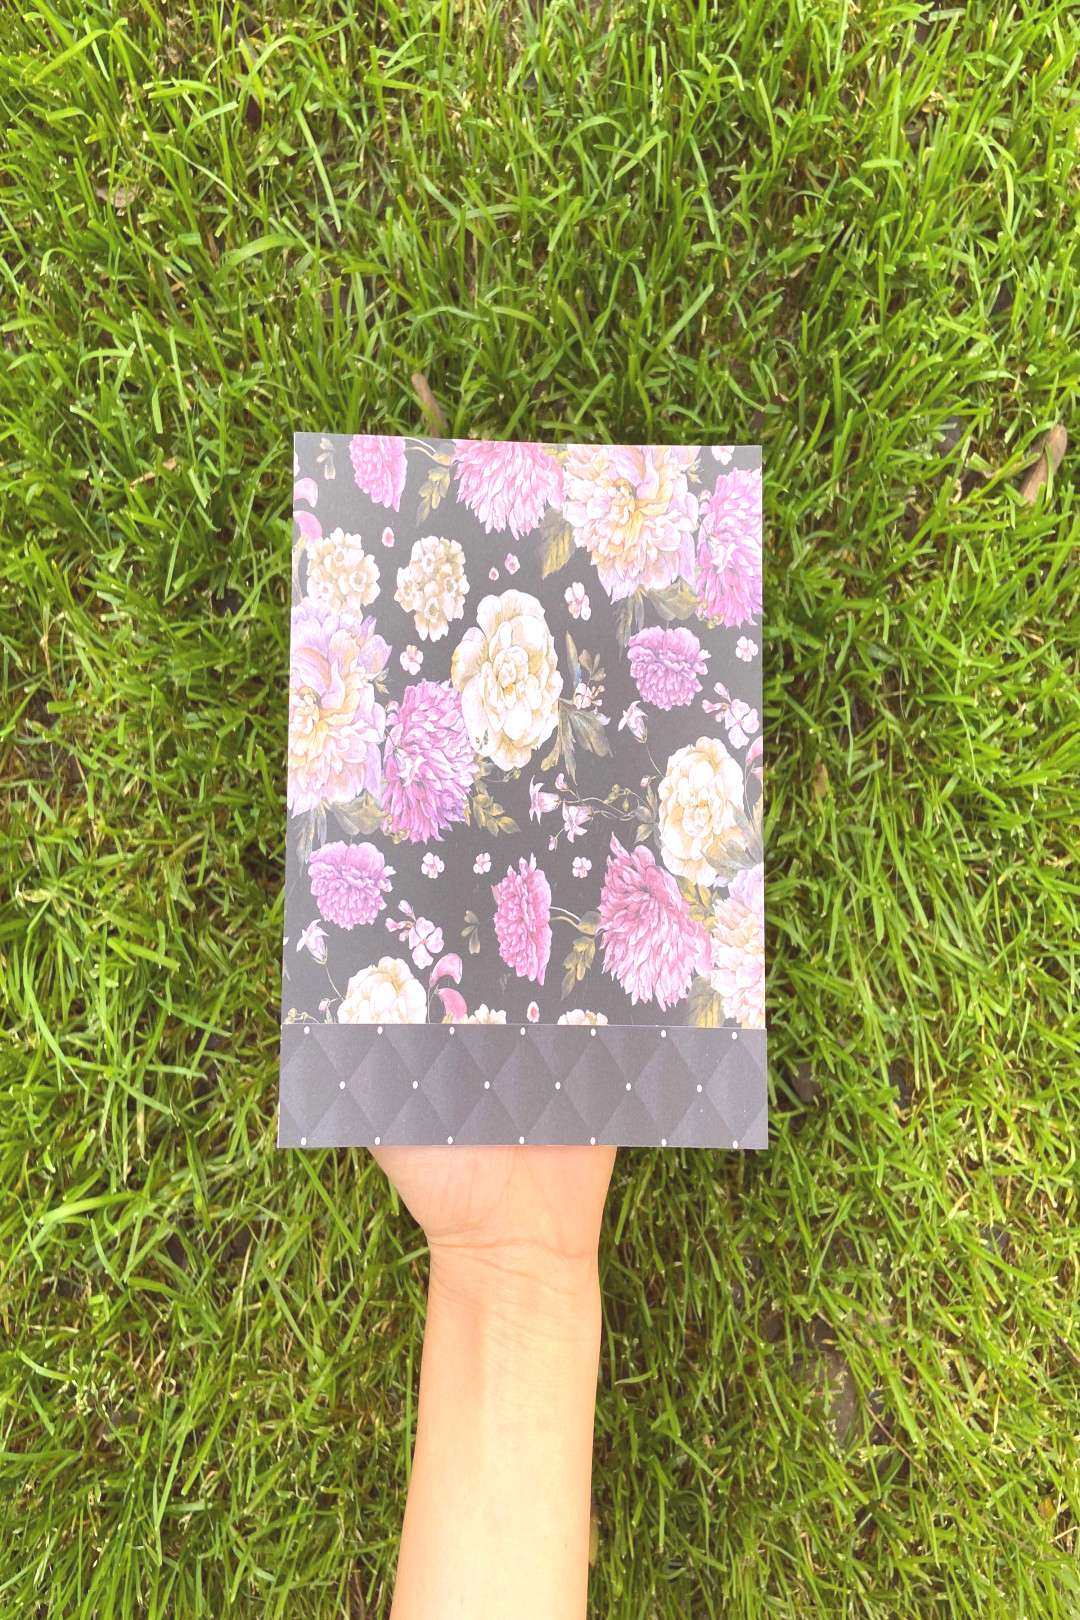 Excited to share this item from my shop: Handmade Black and Purple Floral Greeting Card